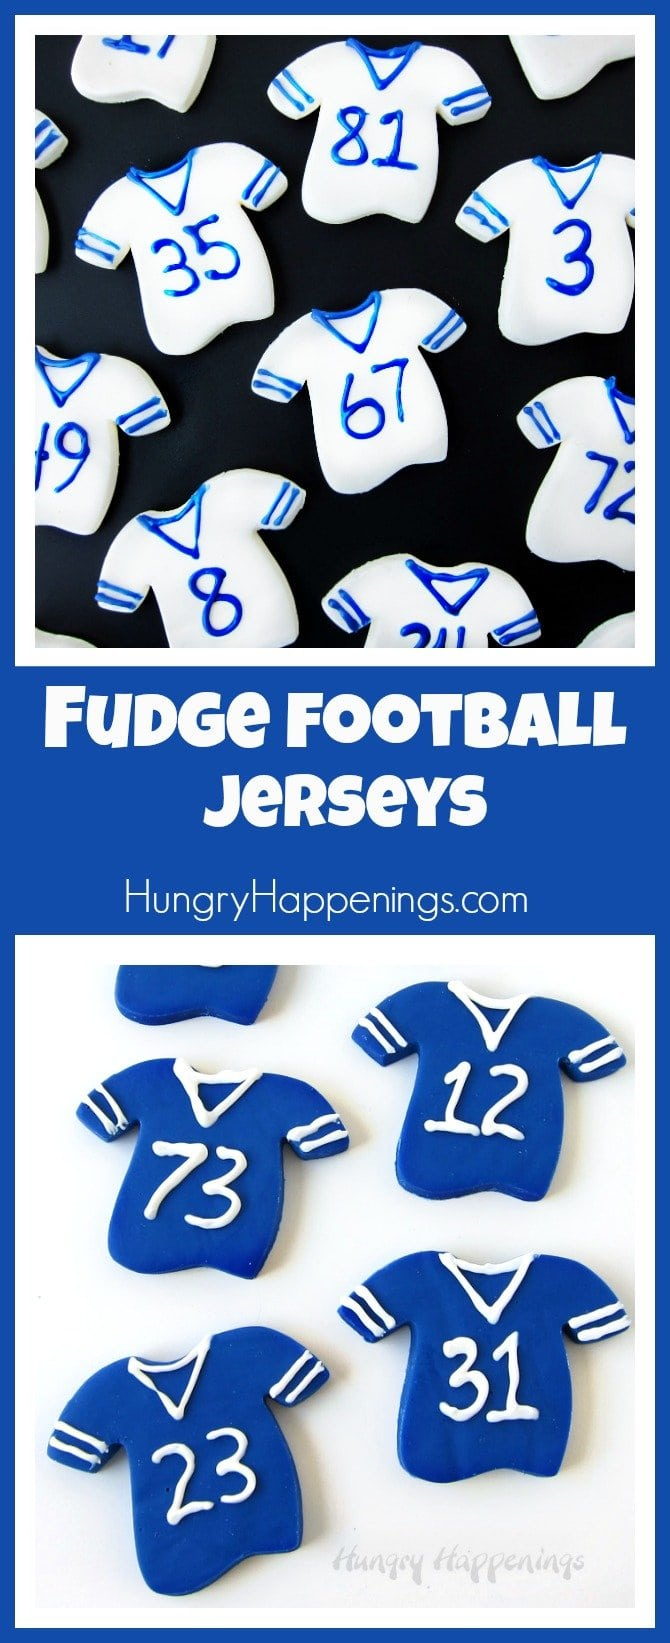 Fudge Football Jerseys are super easy to make and are perfect game time treats. You can personalize them using your favorite team's colors and football players numbers.